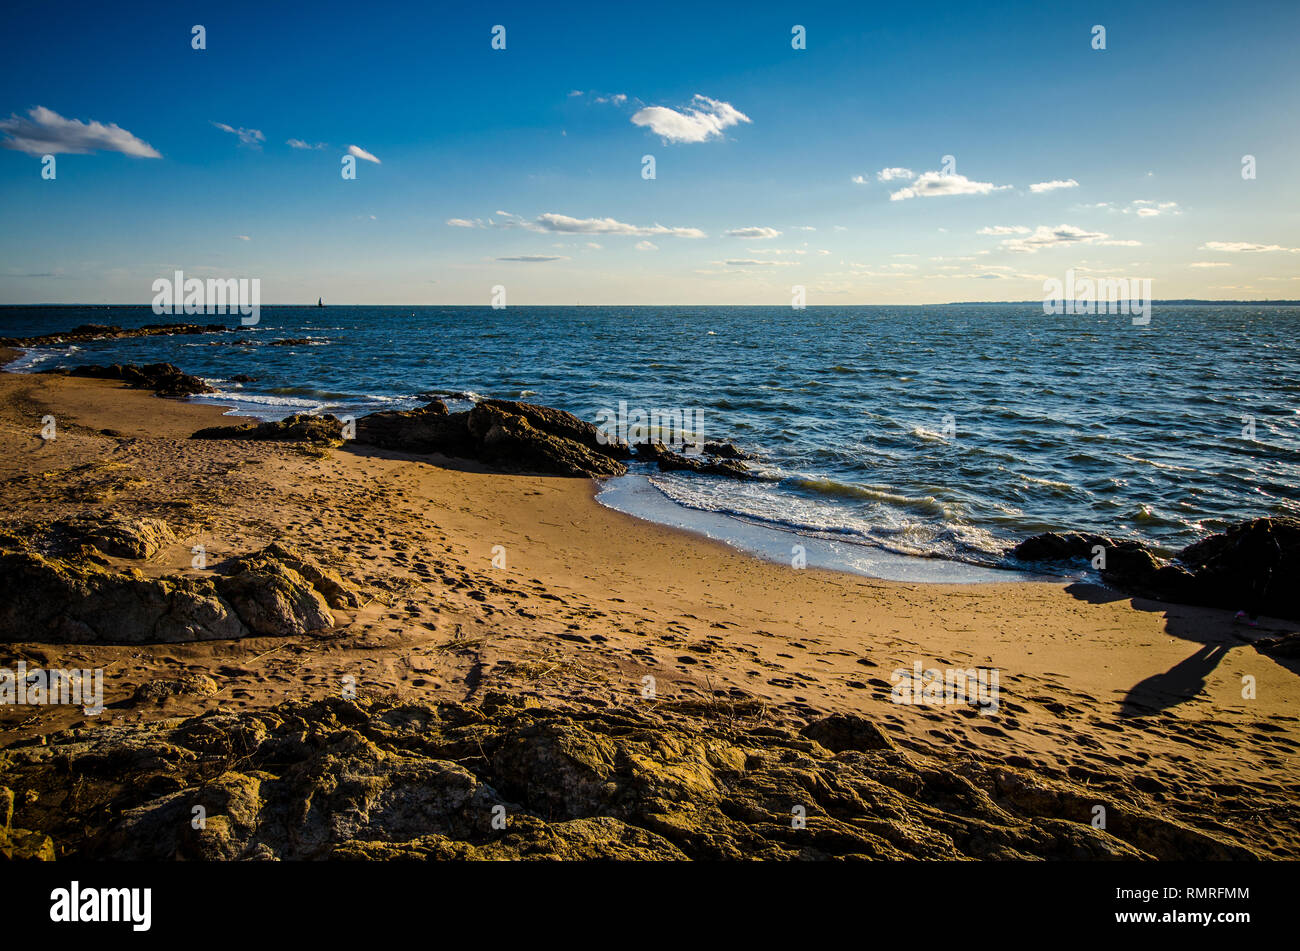 View of the Long Island Sound from Lighthouse Point in New Haven Connecticut - Stock Image